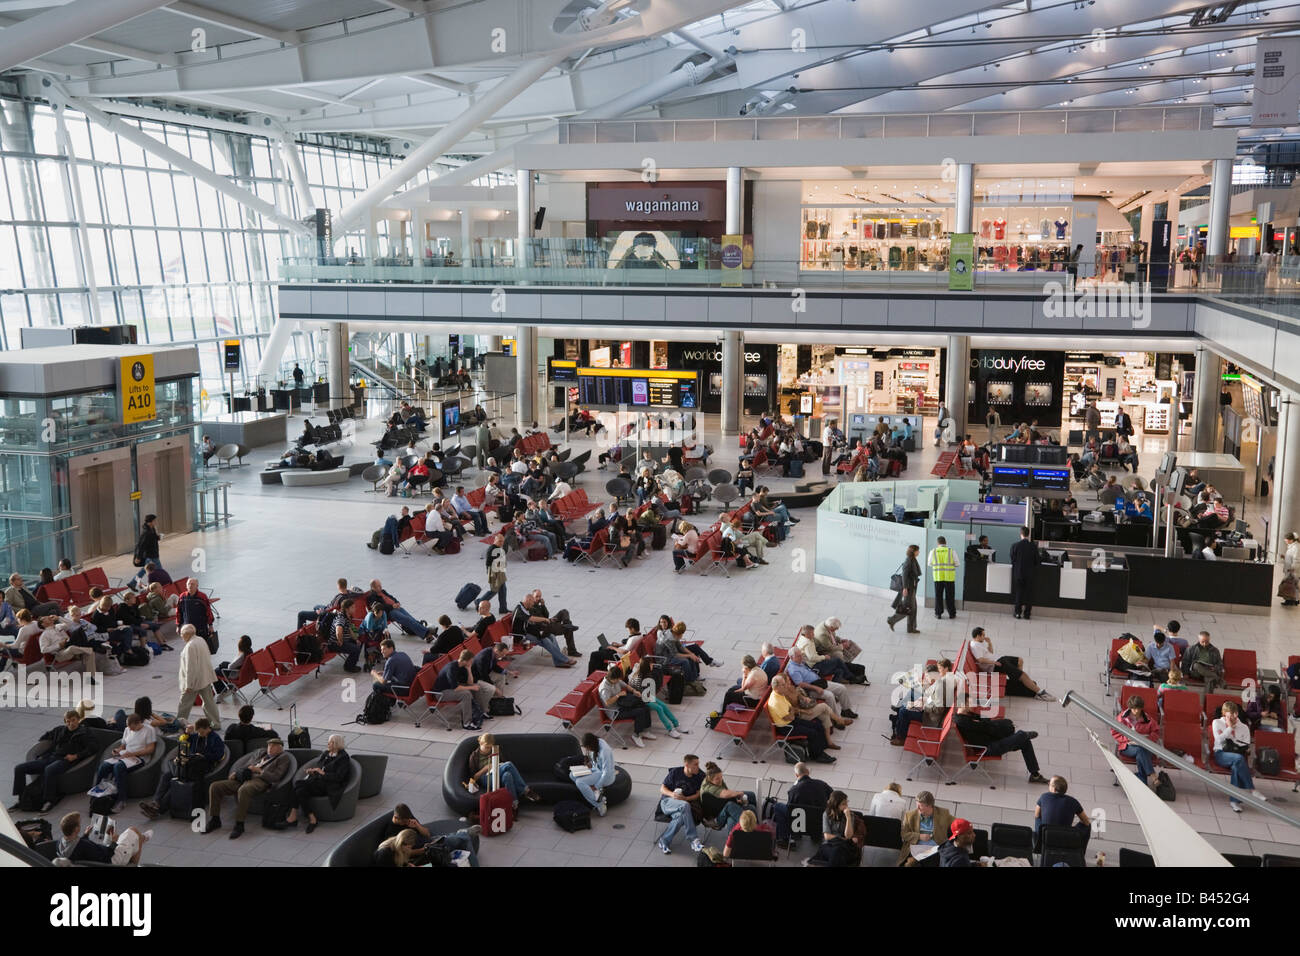 People in London Heathrow Airport British Airways departures lounge inside Terminal 5 building with duty free shops - Stock Image